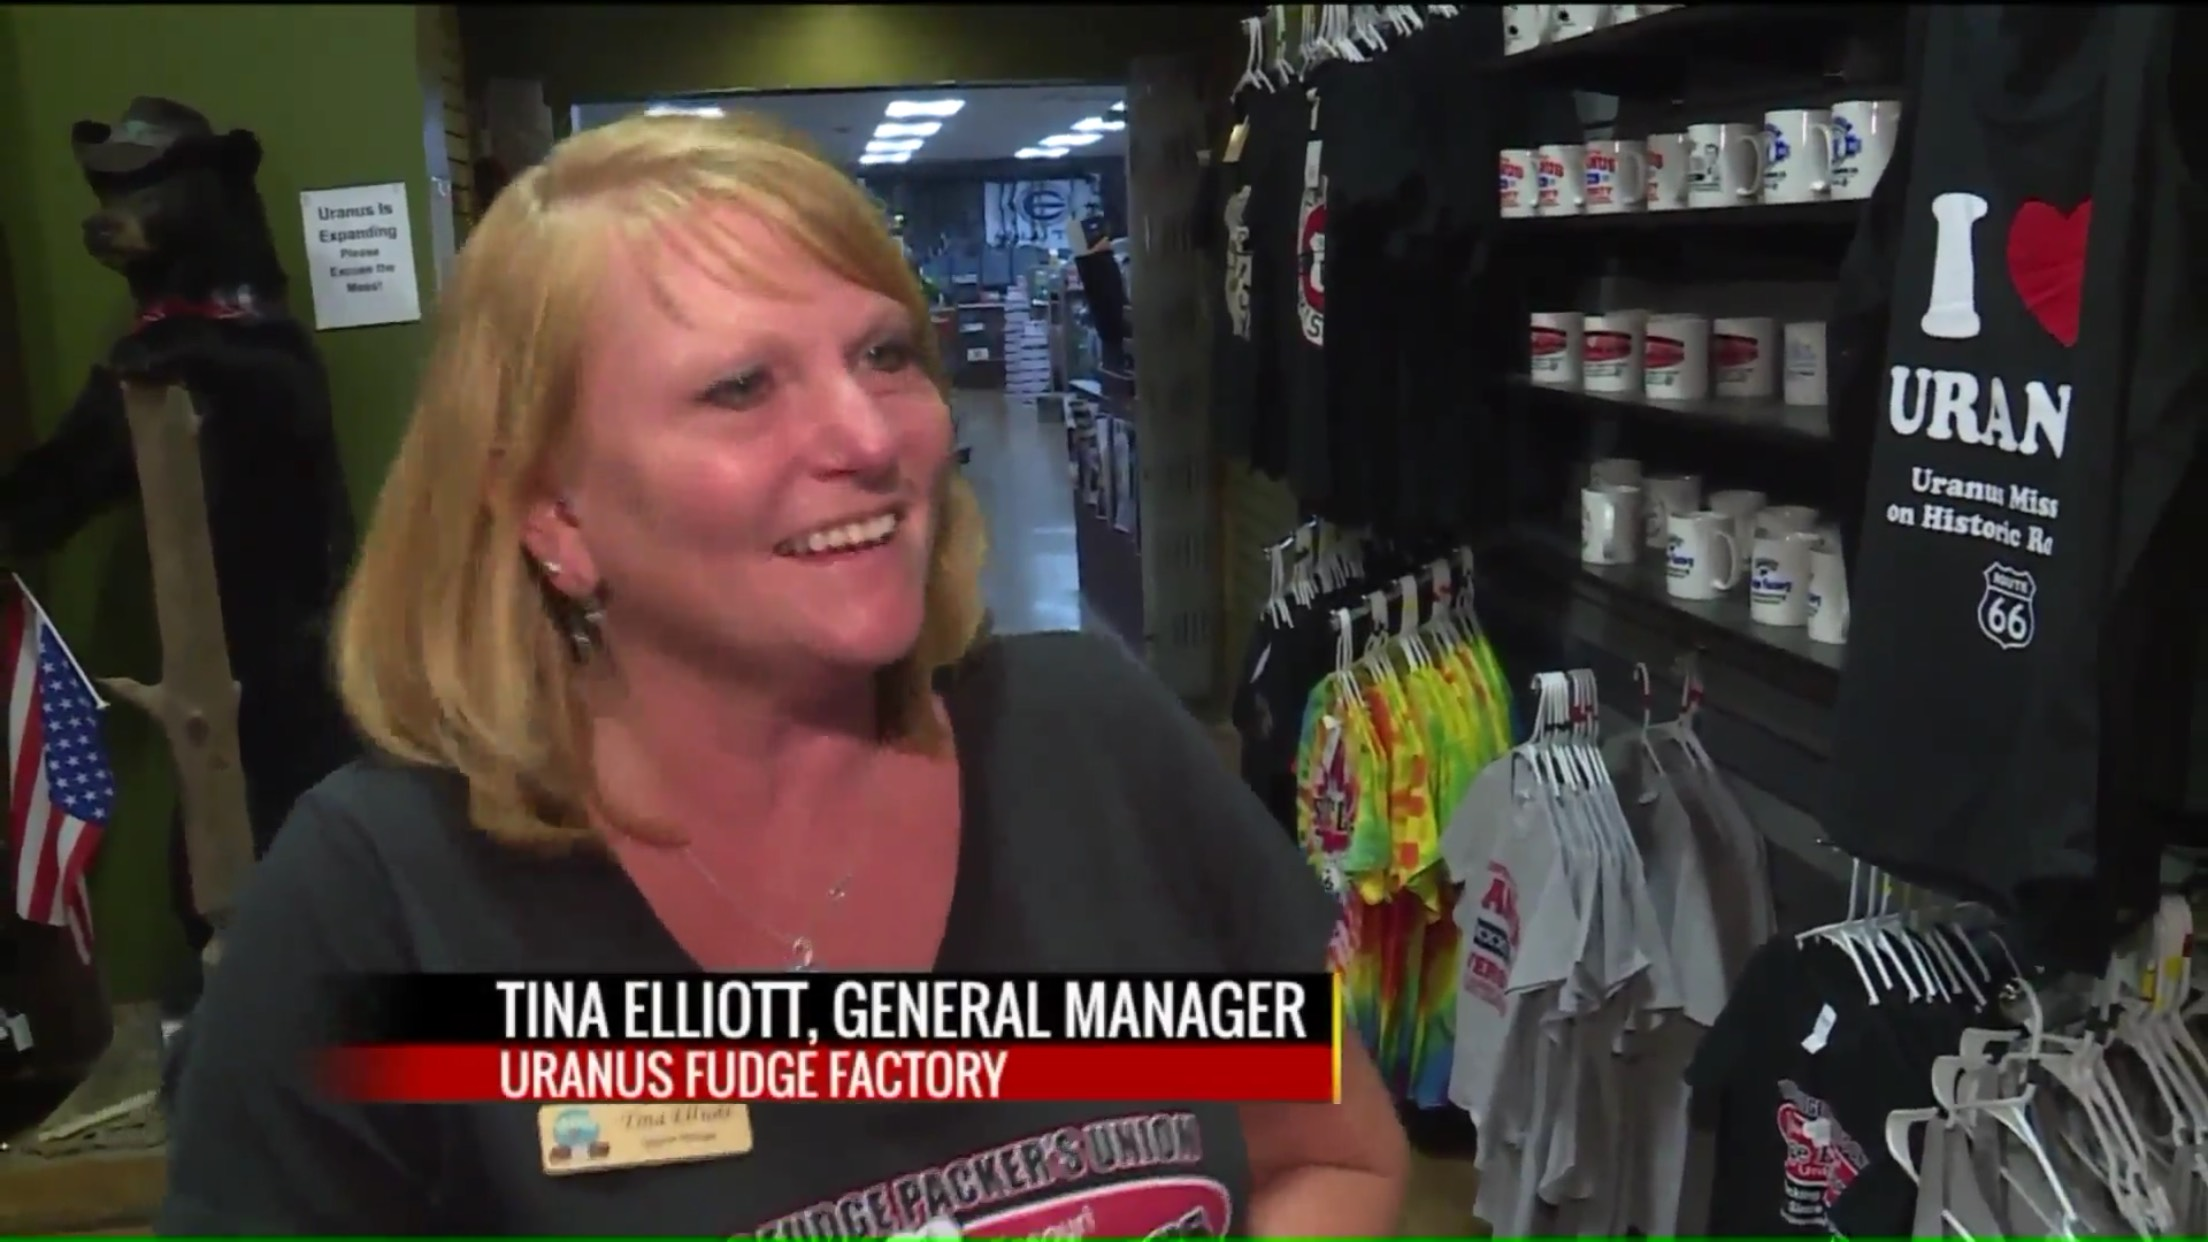 Tina Elliott, General Manager, Uranus Fudge Factory